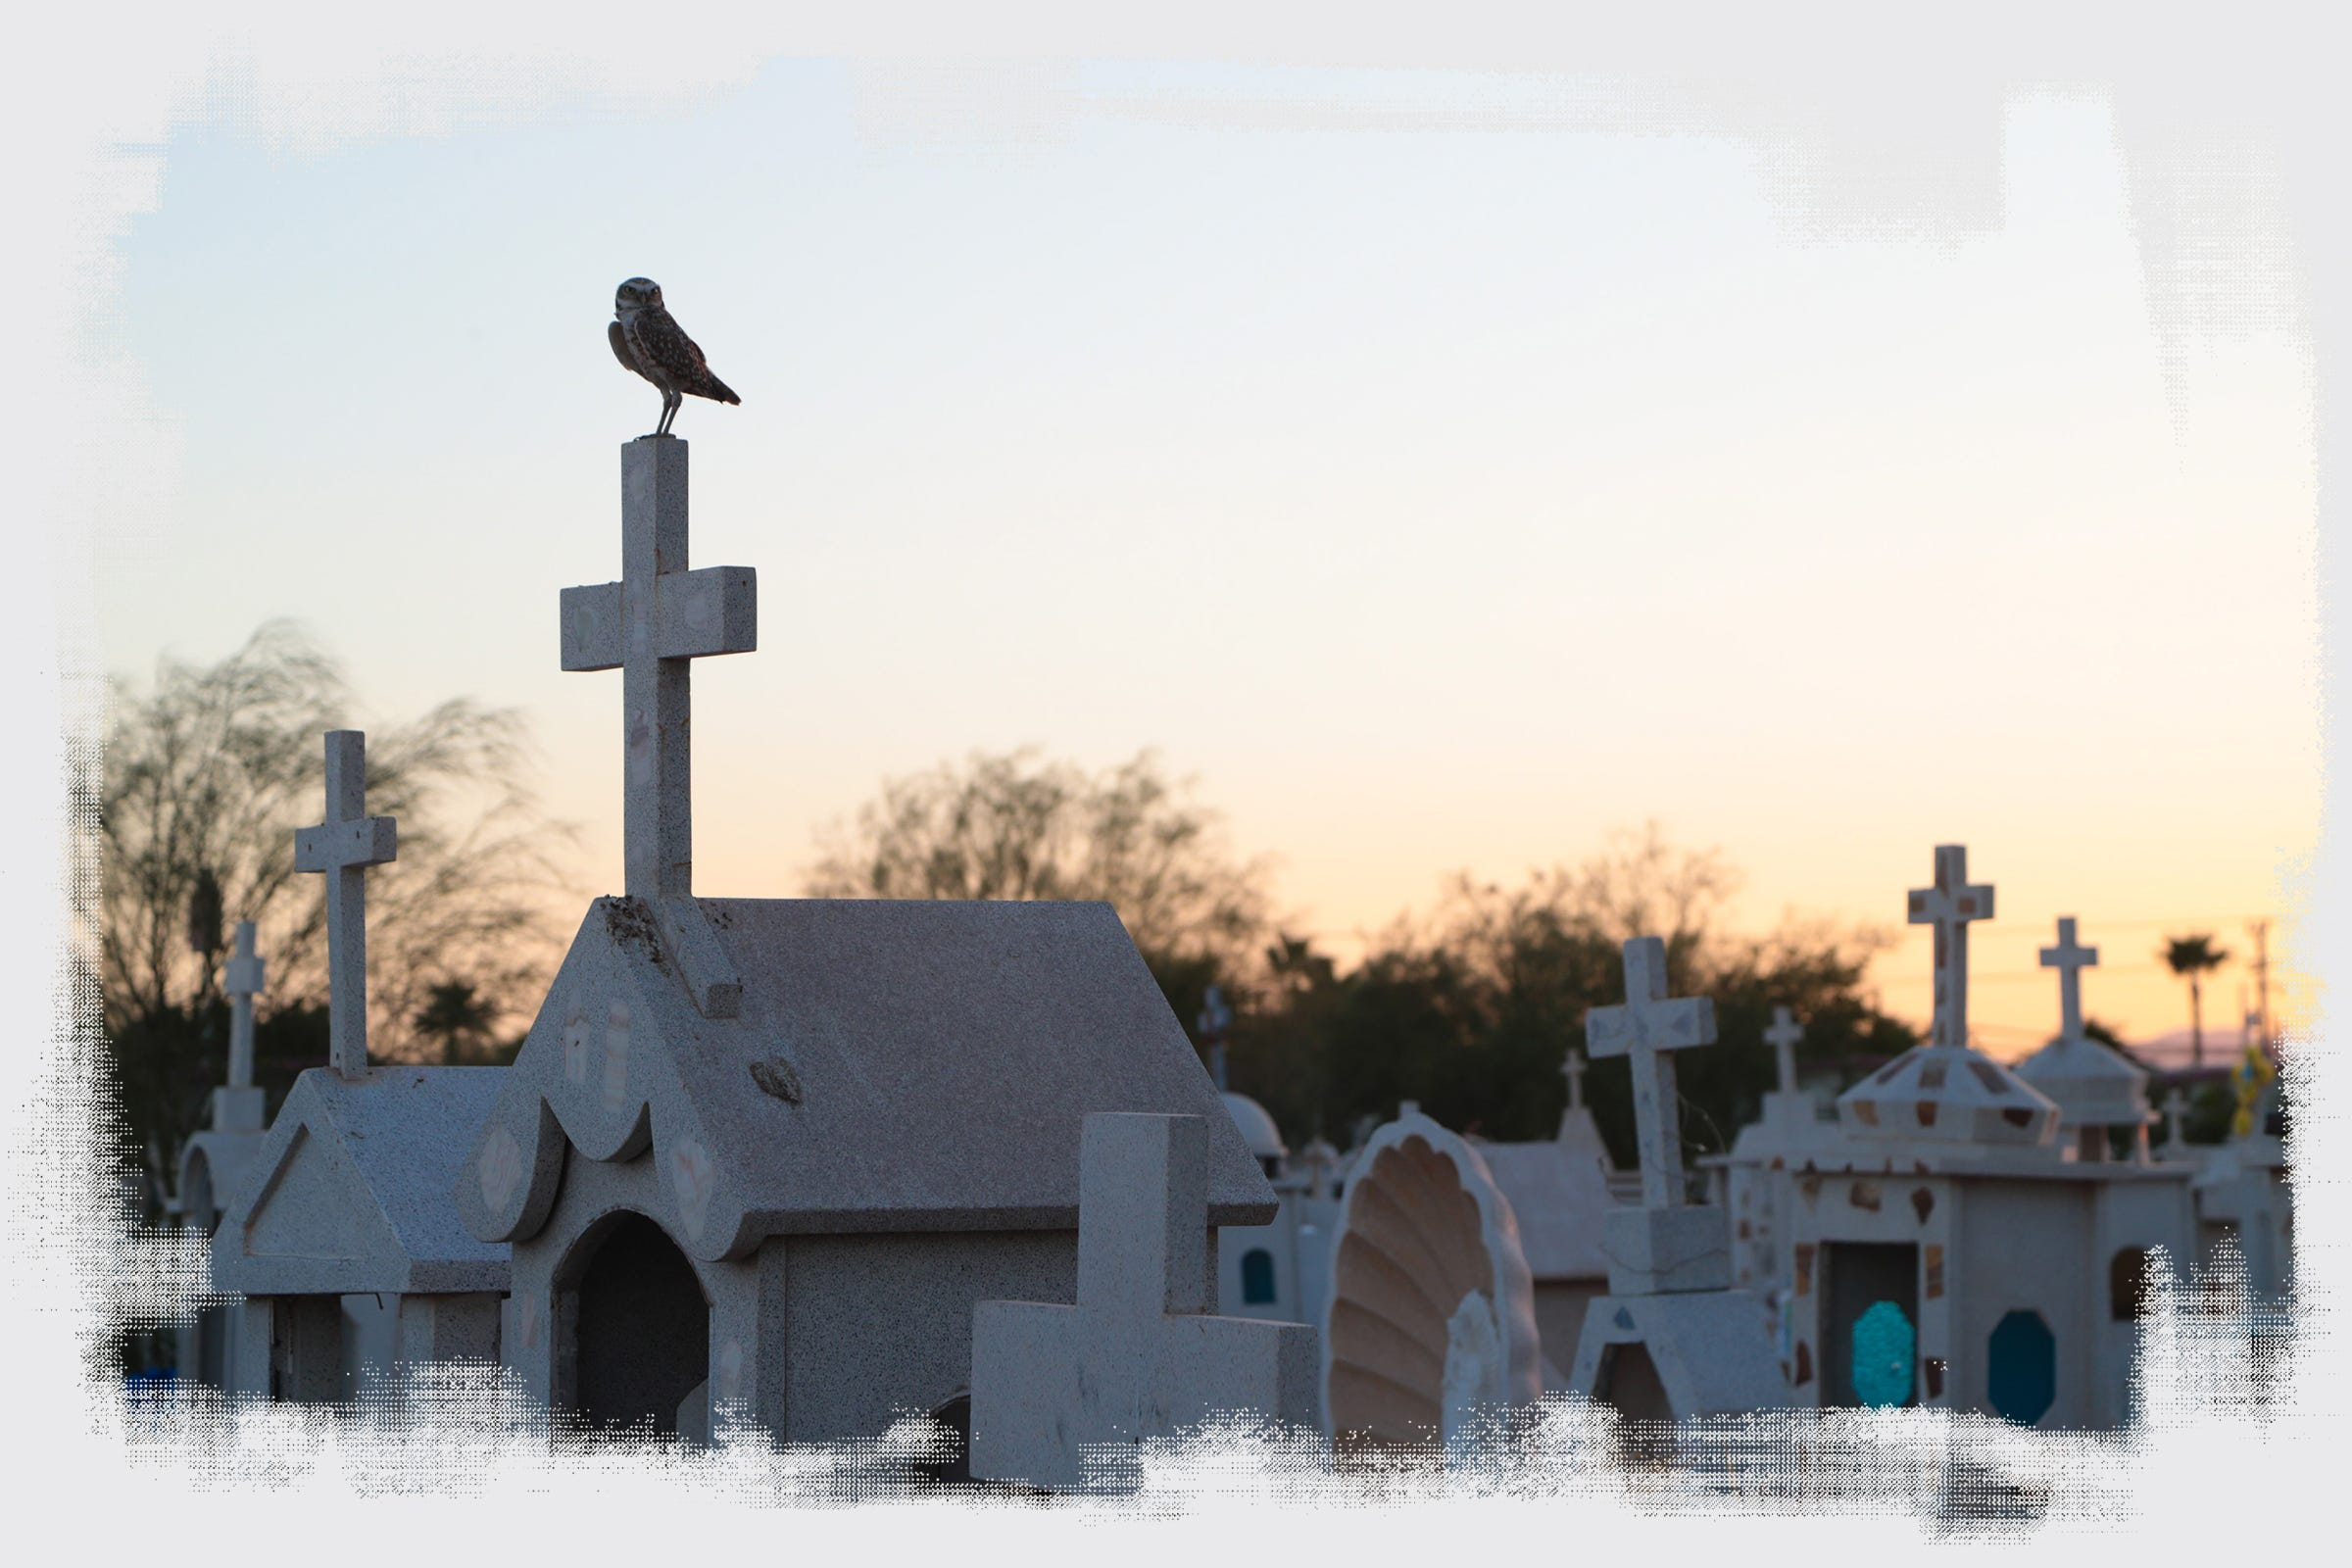 A burrowing owl perches atop a headstone at the Jardin Descanso Eterno Cemetery in Mexicali.